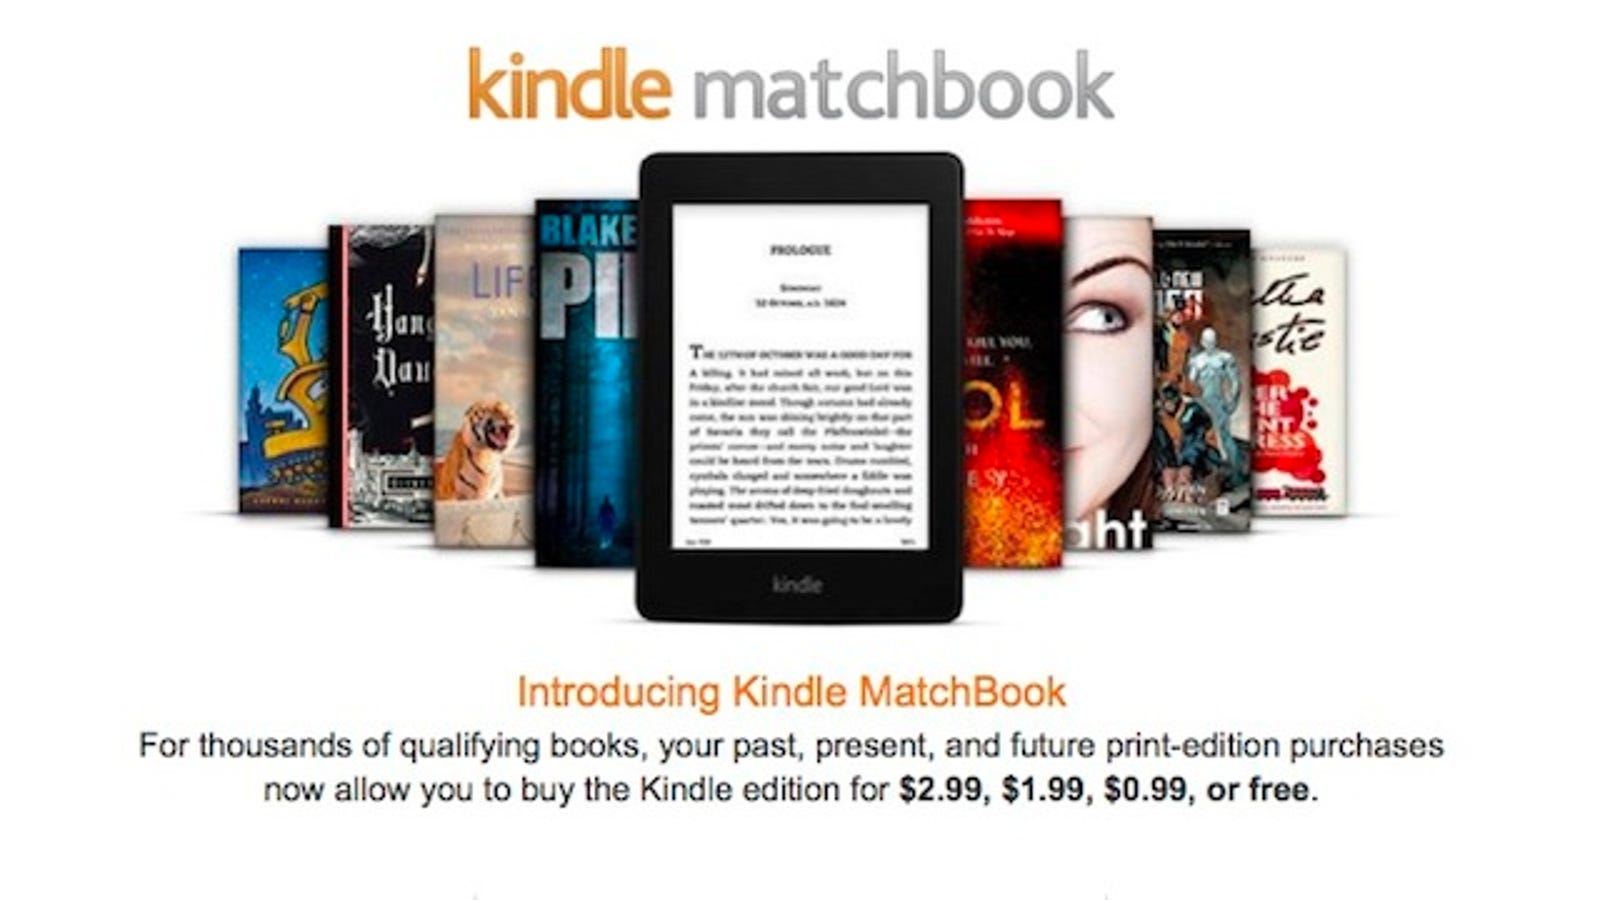 Amazon's Kindle Matchbook Offers Cheap Ebook Versions of